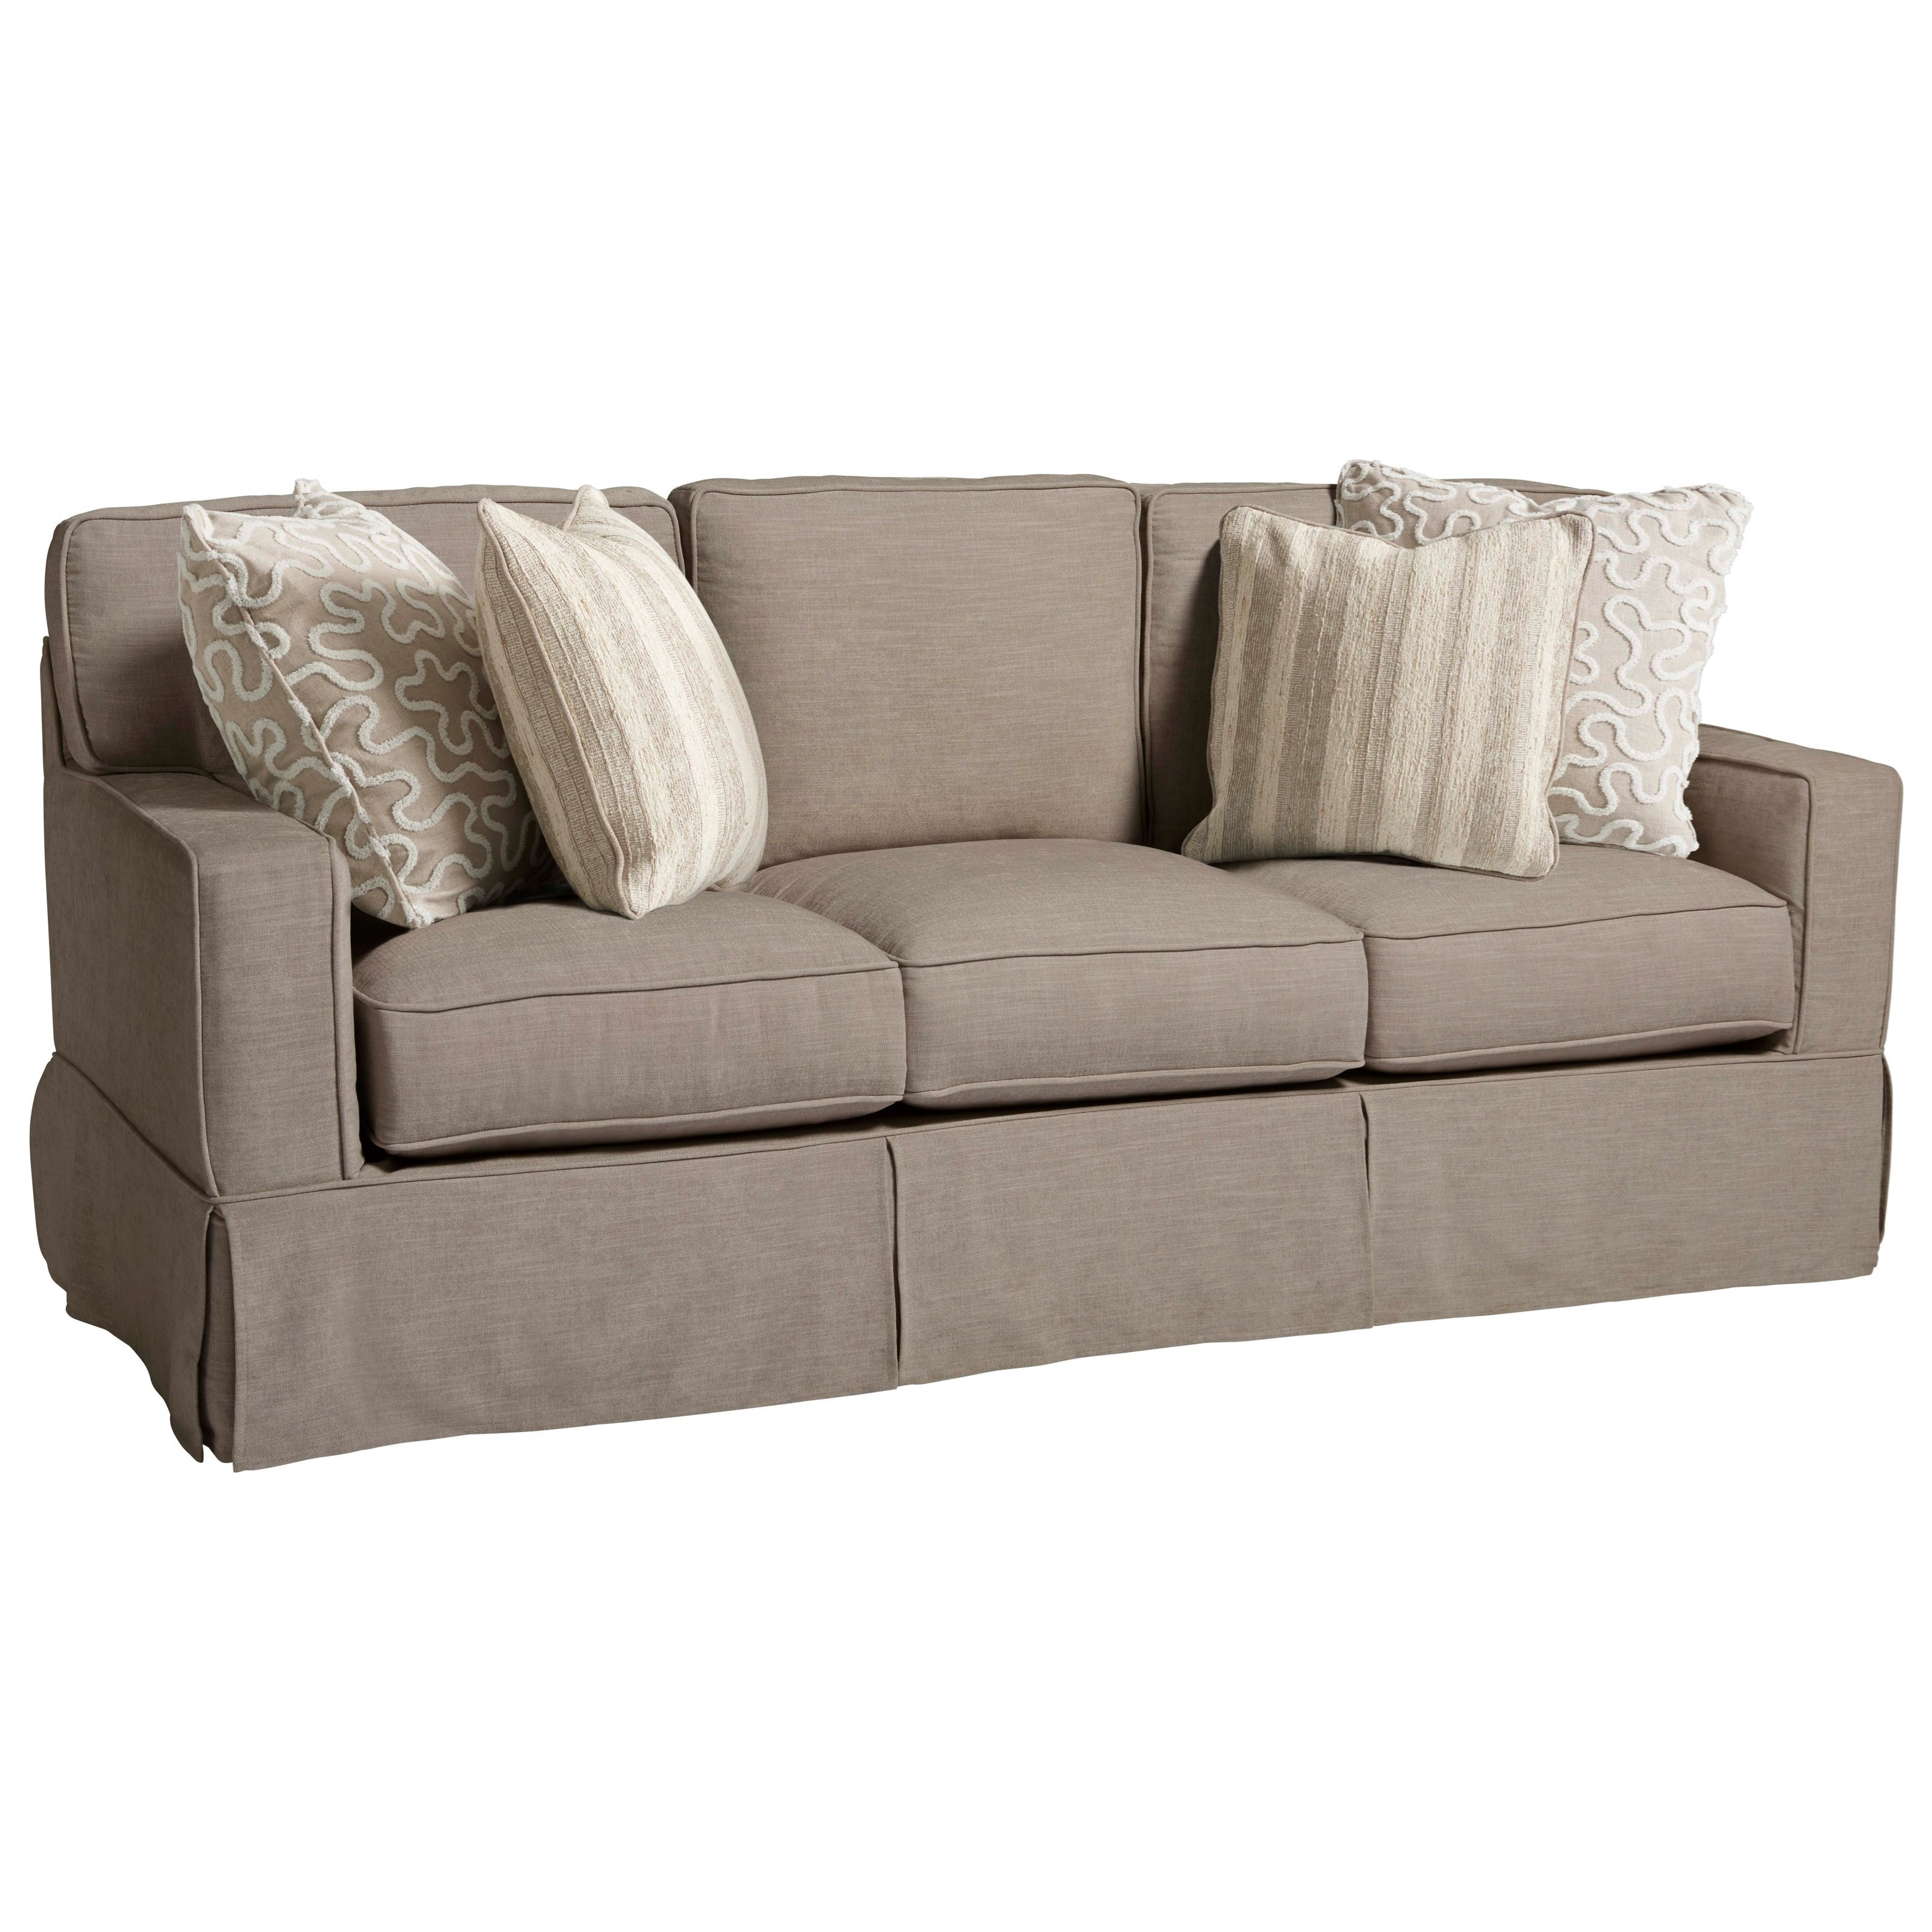 Chatham Casual Sofa with Track Arms